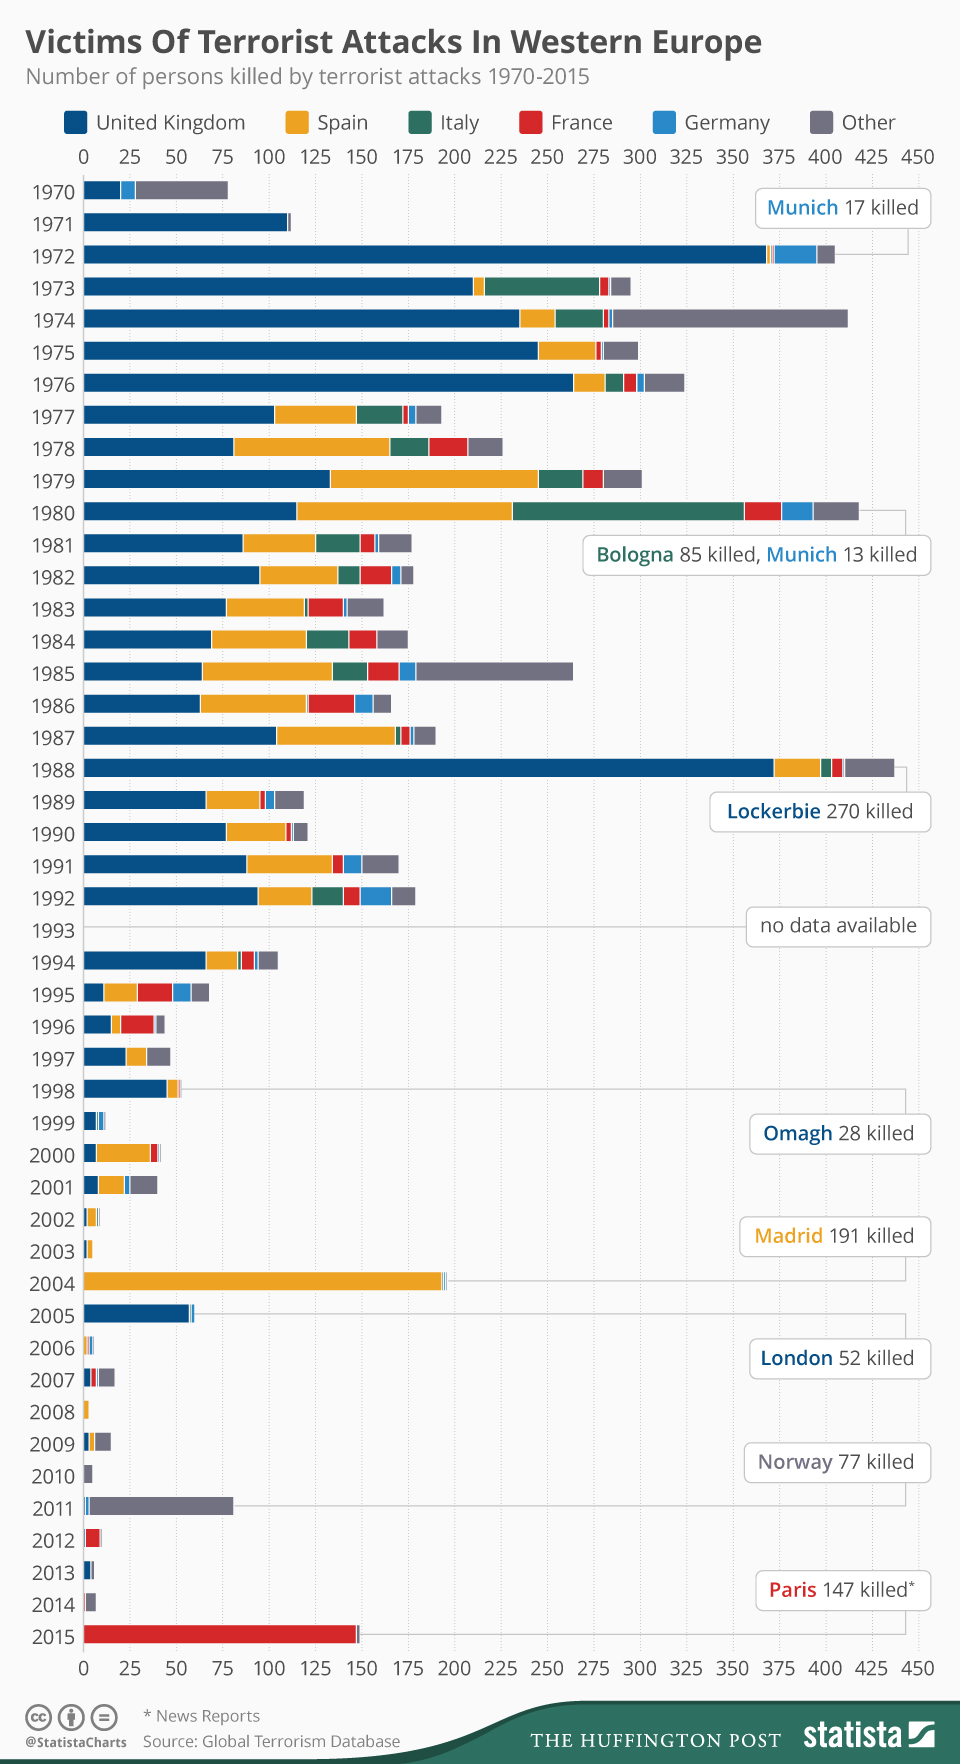 The number of persons killed by terrorist attacks 1970-12015 in Western Europe